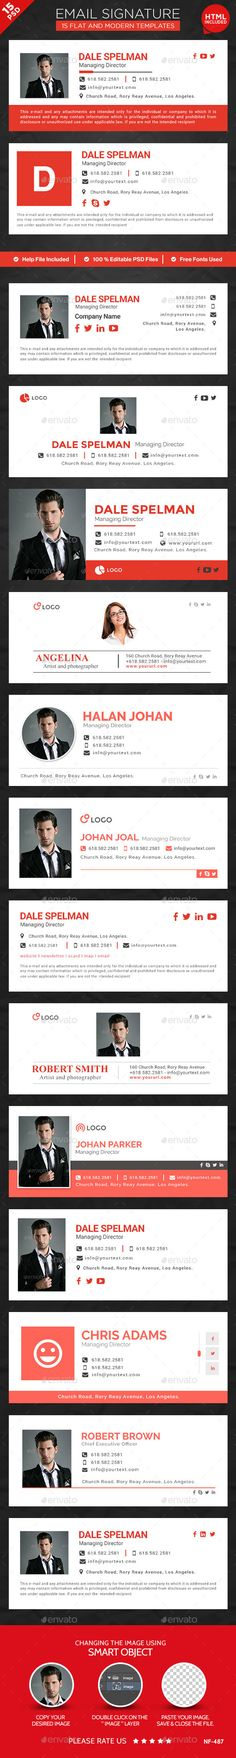 15 Email Signature Templates - HTML Files Included                                                                                                                                                      More                                                                                                                                                                                 Más